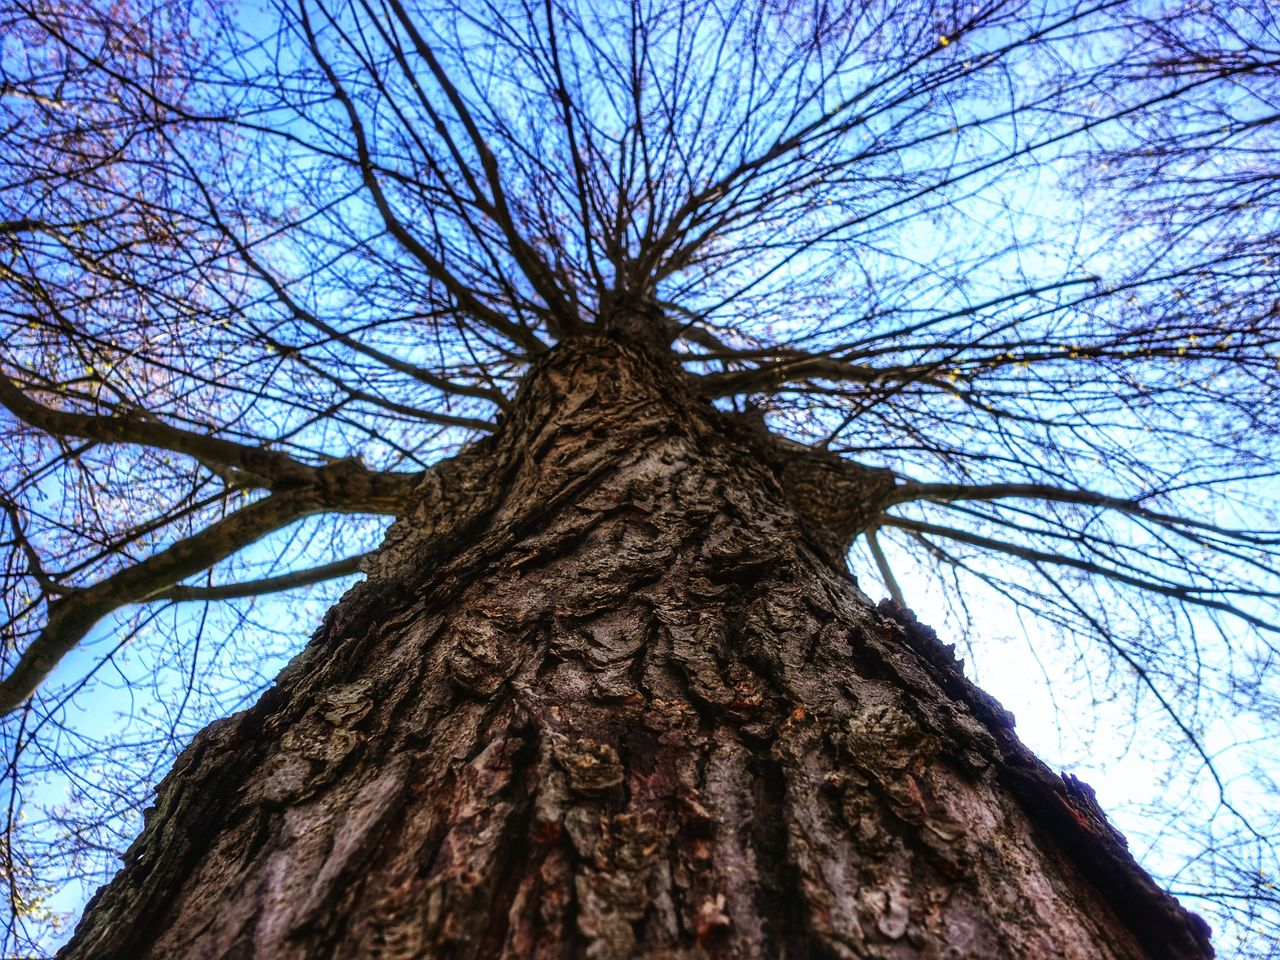 tree, plant, bare tree, trunk, branch, tree trunk, low angle view, sky, nature, no people, bark, day, textured, tranquility, growth, backgrounds, outdoors, tall - high, directly below, beauty in nature, tree canopy